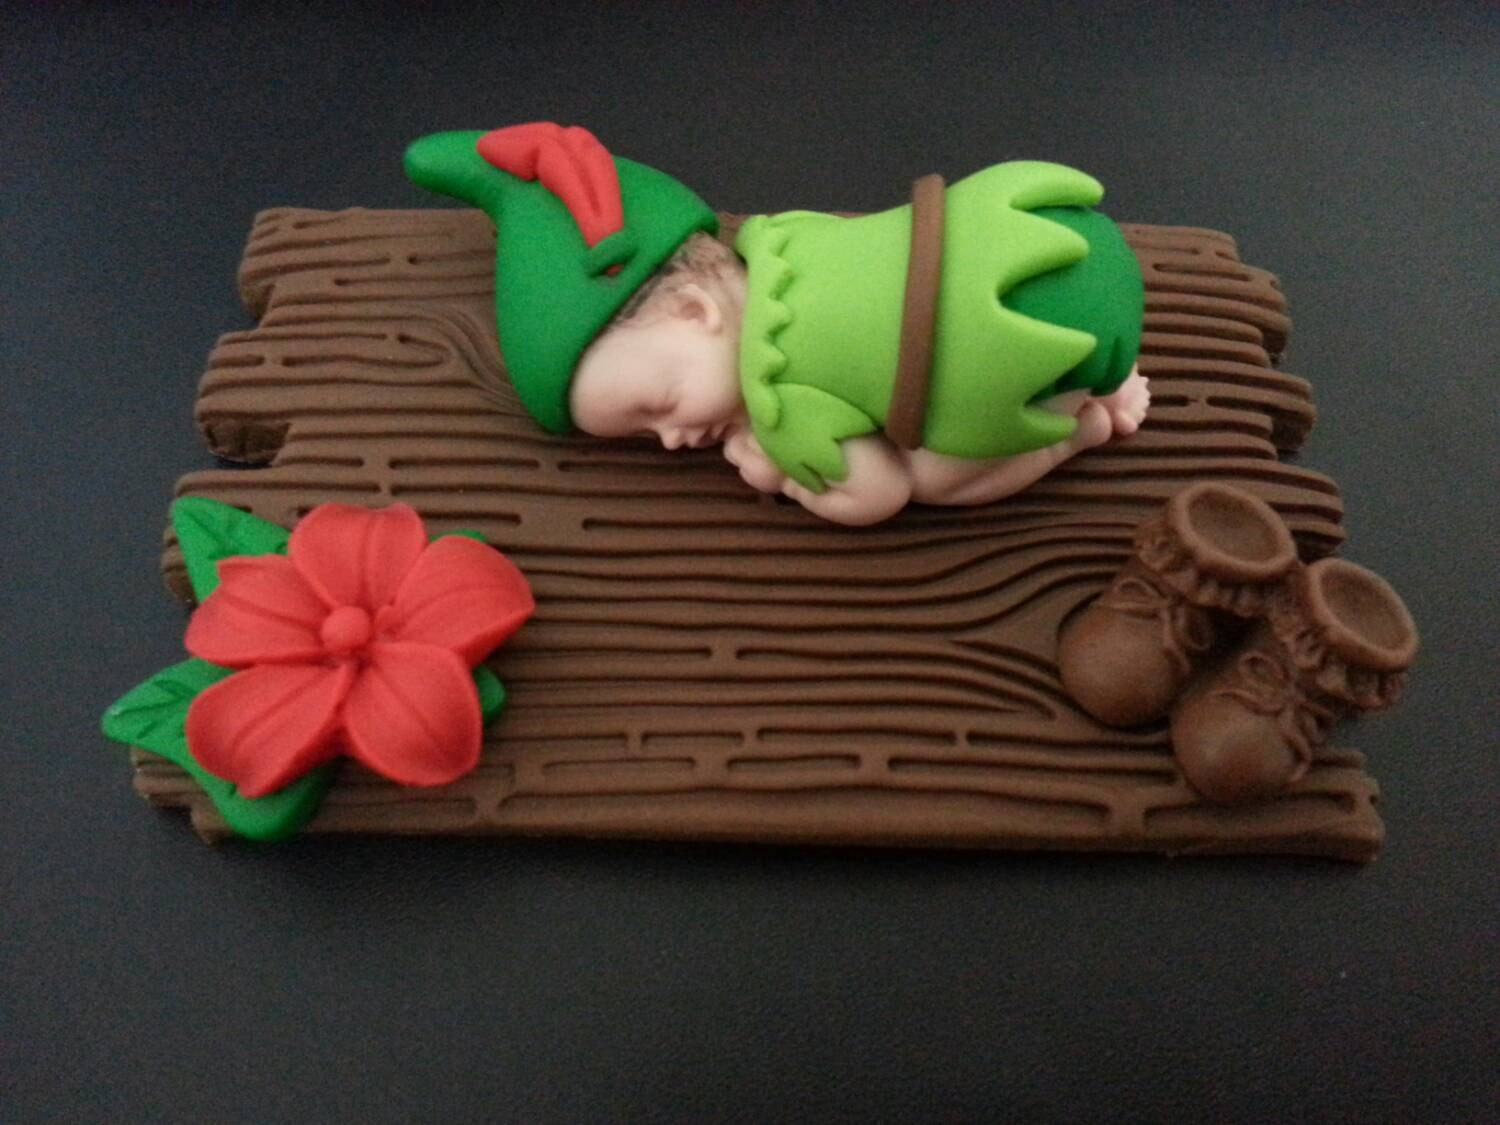 fondant peter pan baby cake topper for baby shower birthday